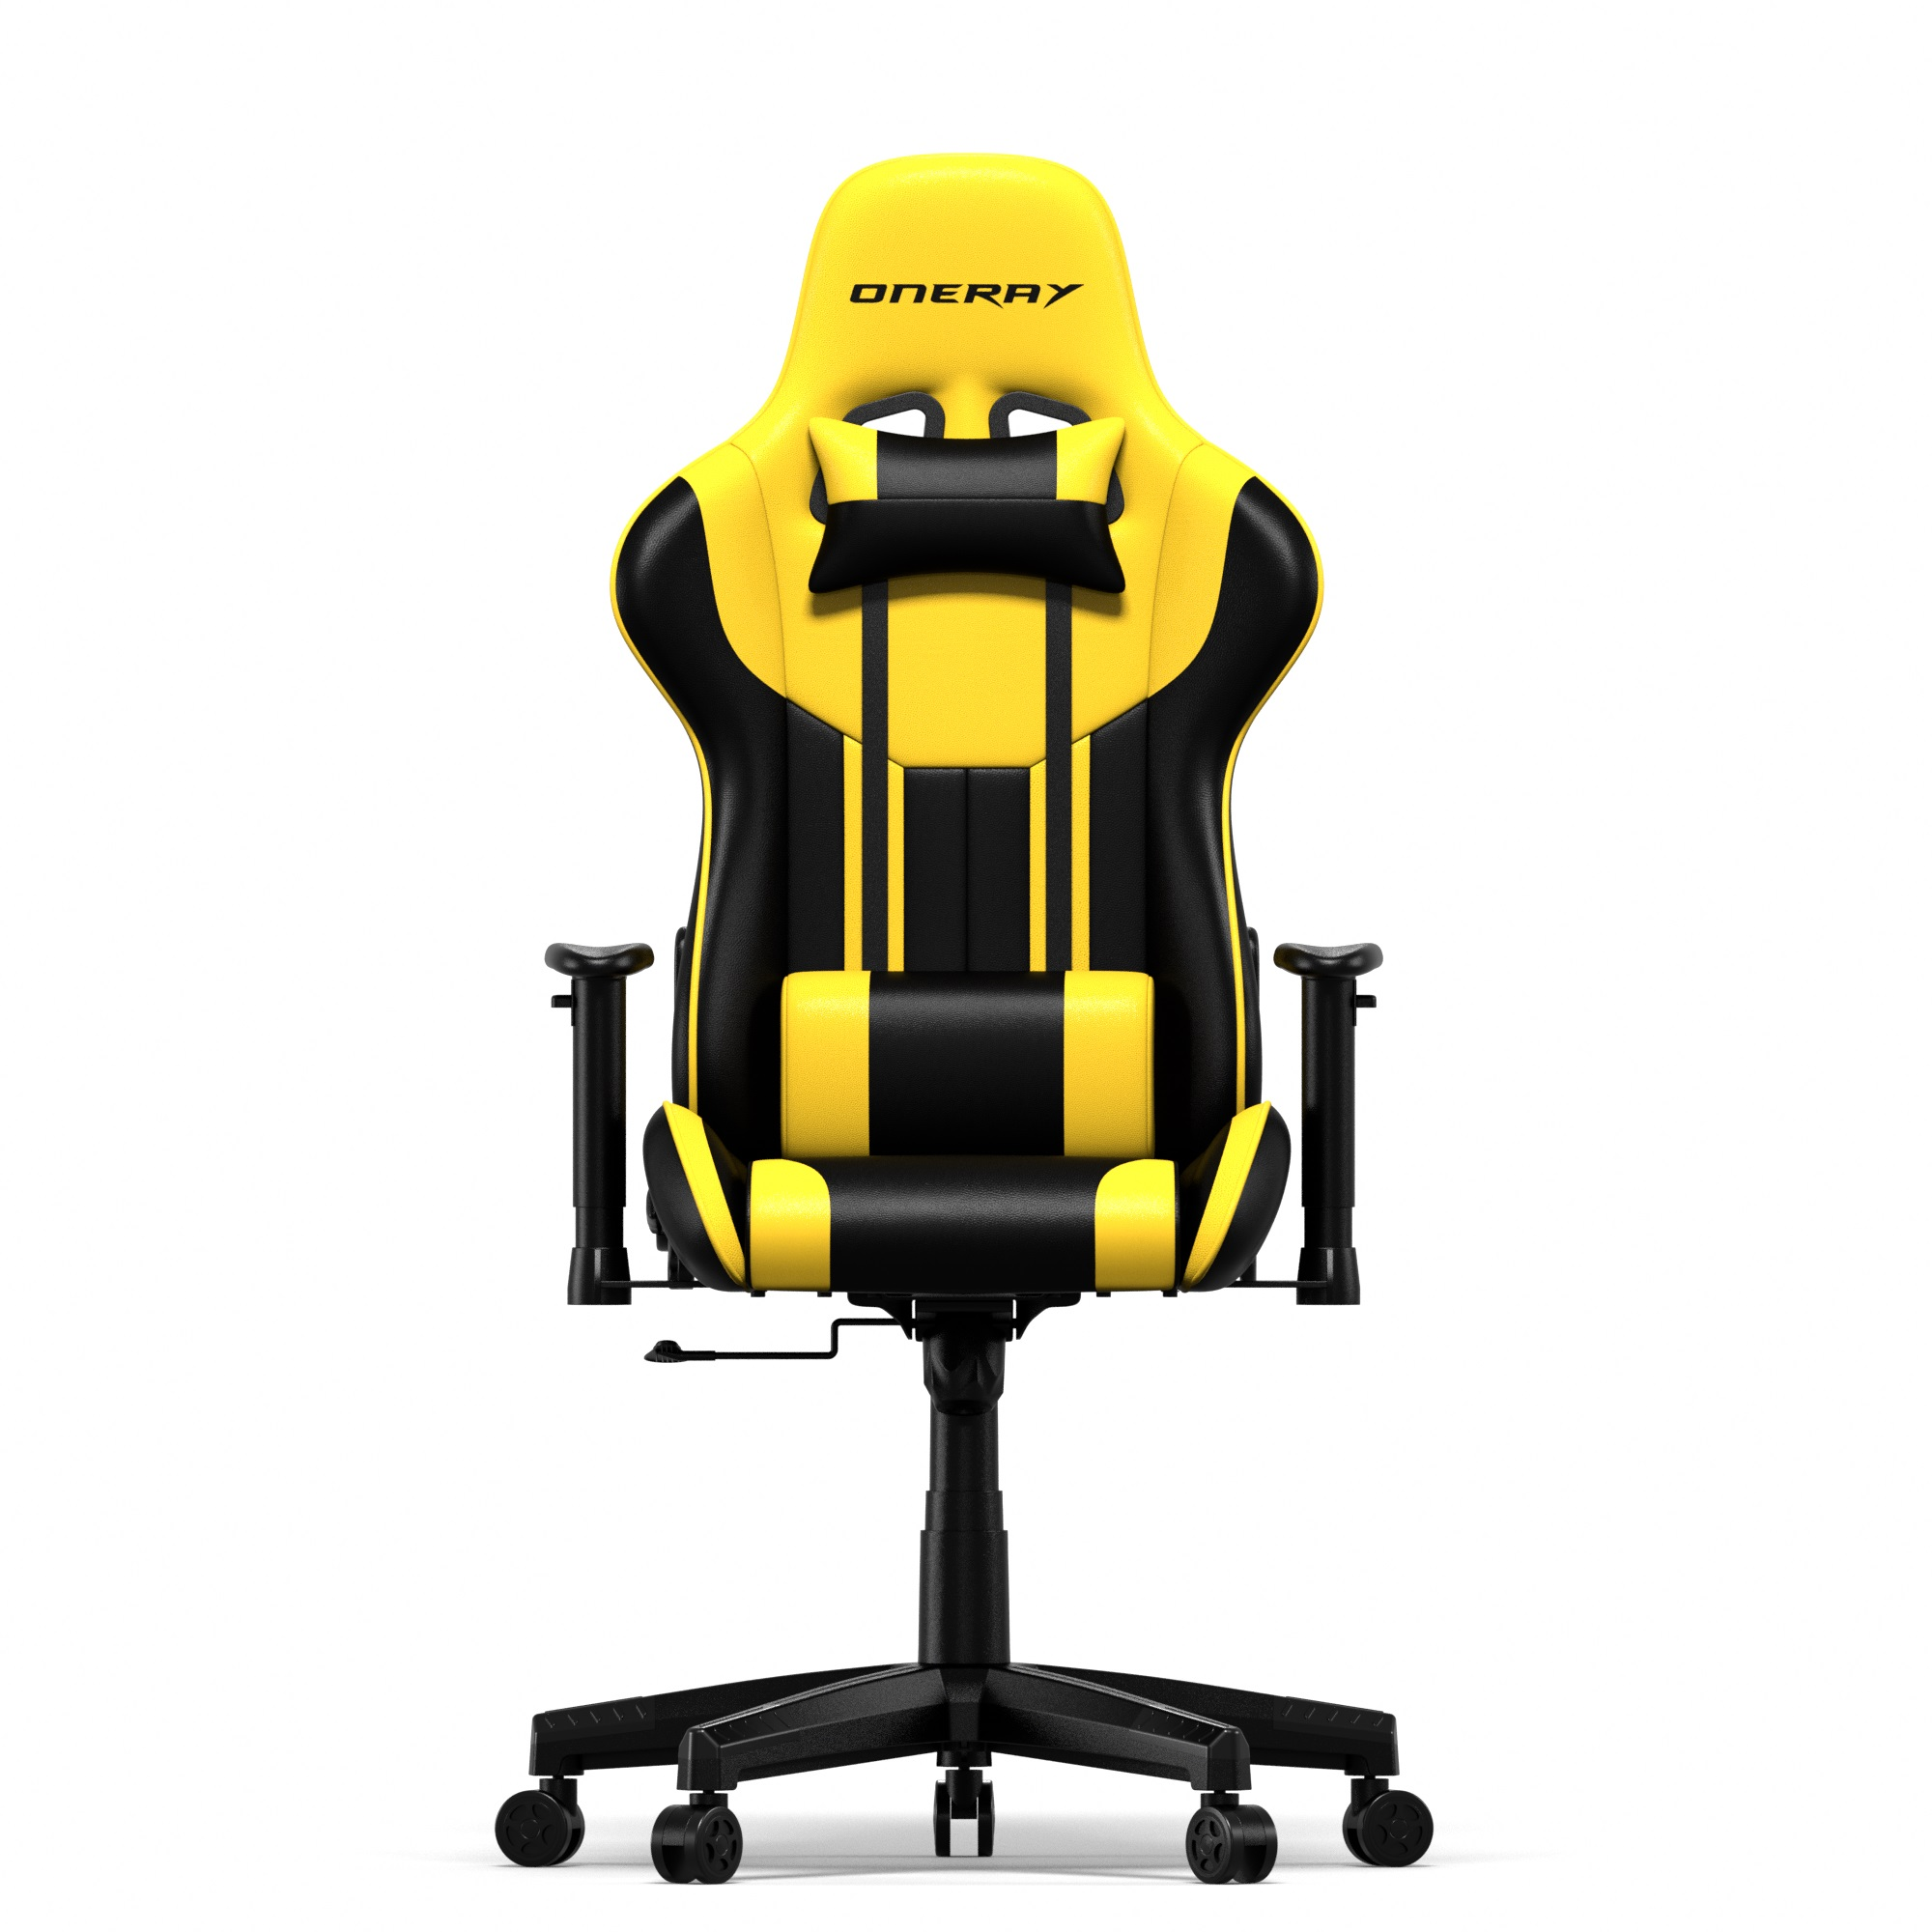 ONERAY ROHS/REACH Certificated PU+PVC Leather Cover wholesaler manufacture Gaming Chair